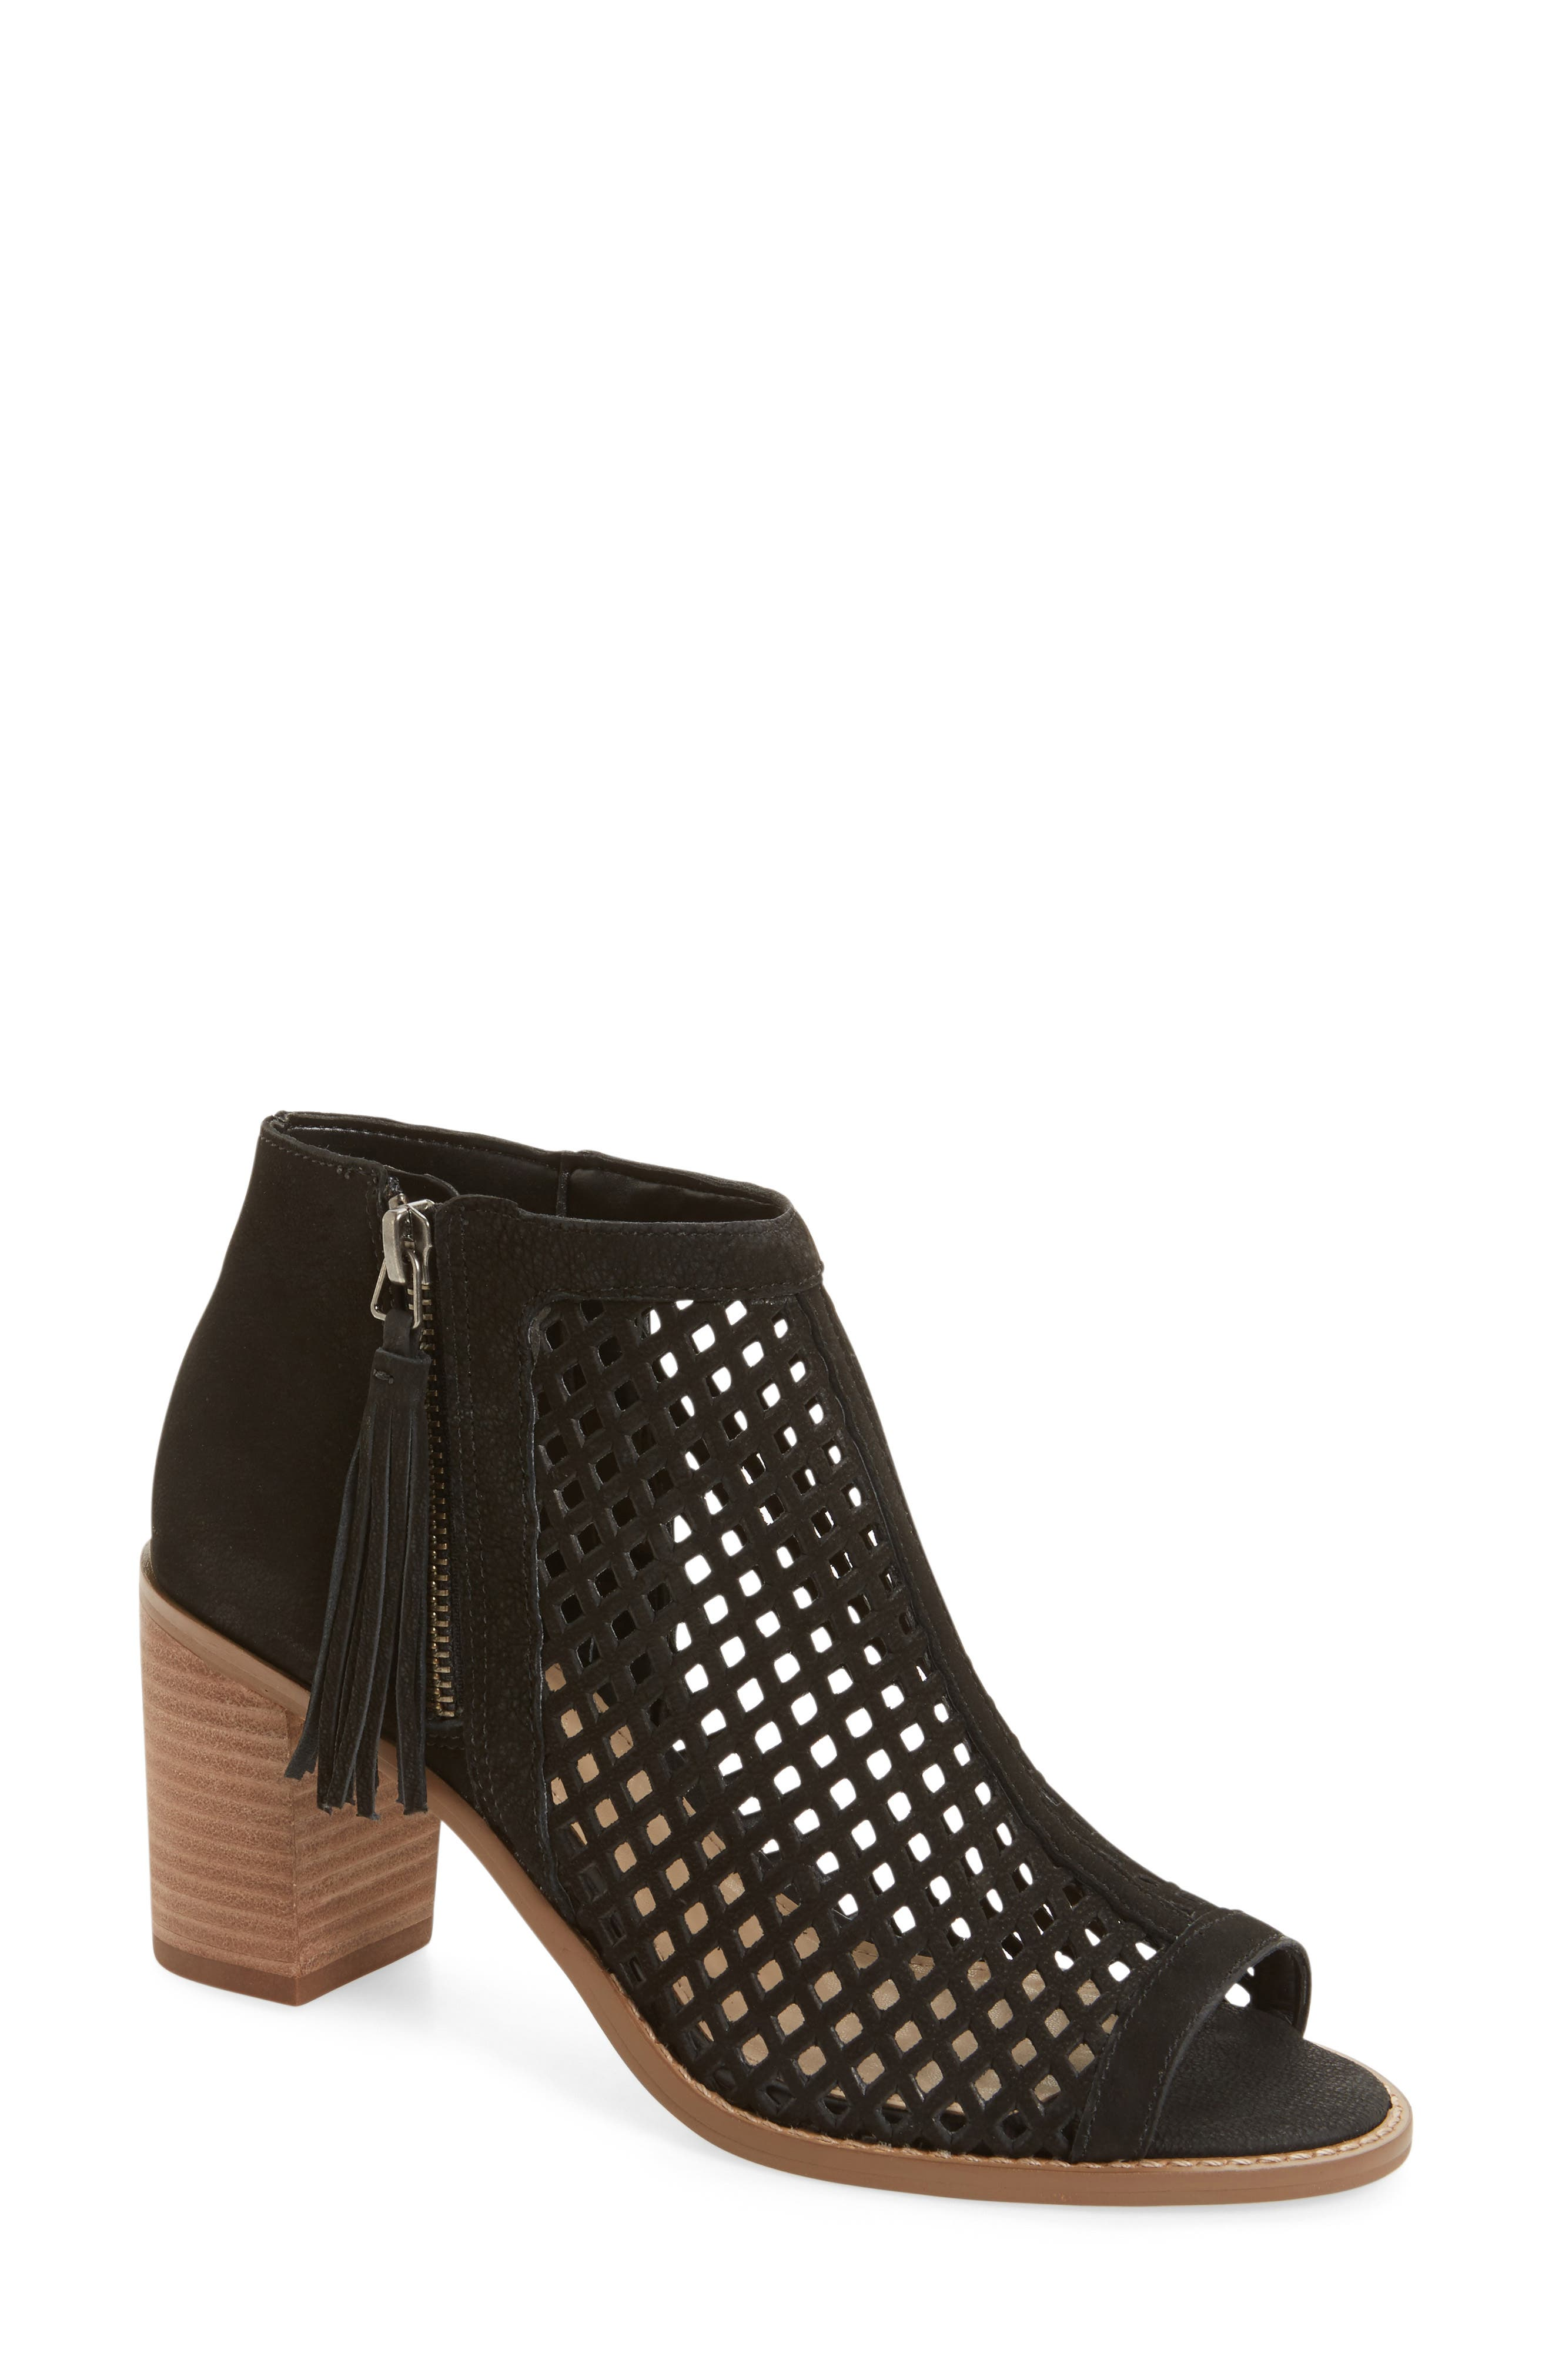 Tresin Perforated Open-Toe Bootie,                             Main thumbnail 1, color,                             001